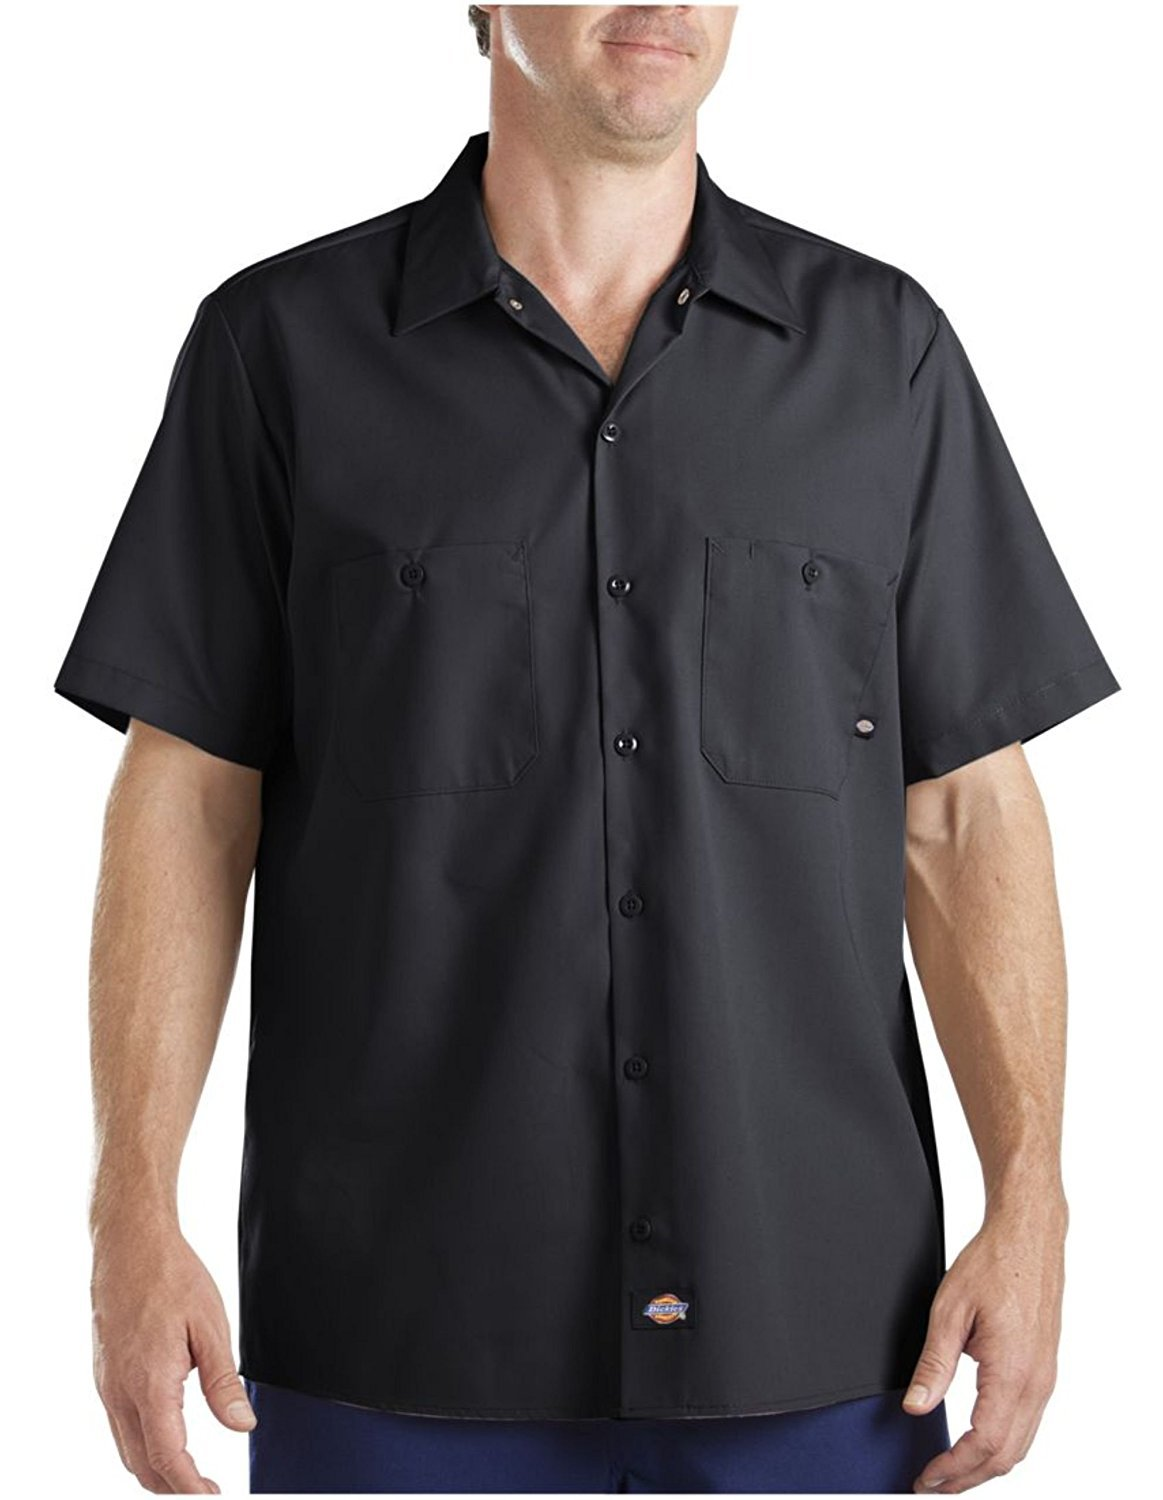 Dickies Men's Short Sleeve Industrial Work Shirt - Black, LS535BK Dickies Occupational Workwear